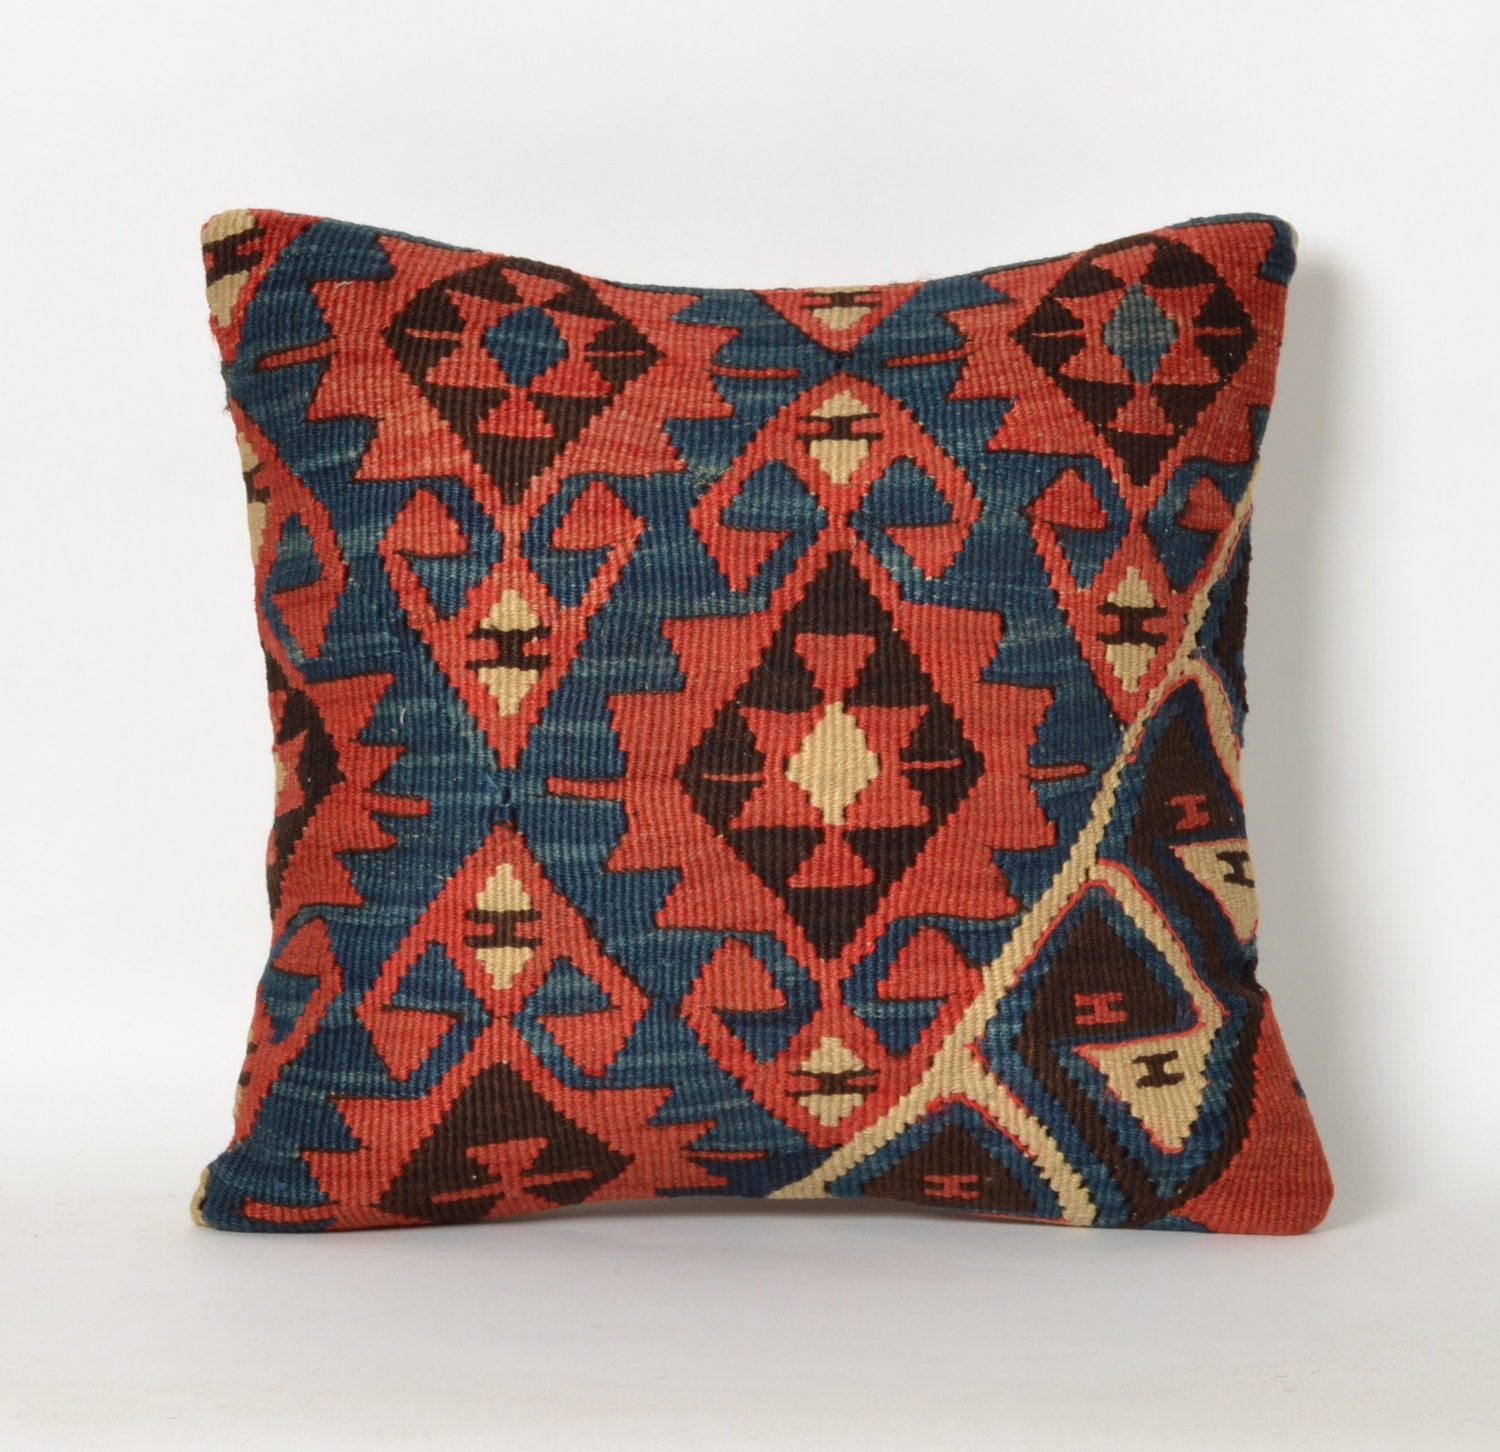 Moroccan Floor Pillows: Tribal Rug Moroccan Boho Pillow Floor Rug Cushion